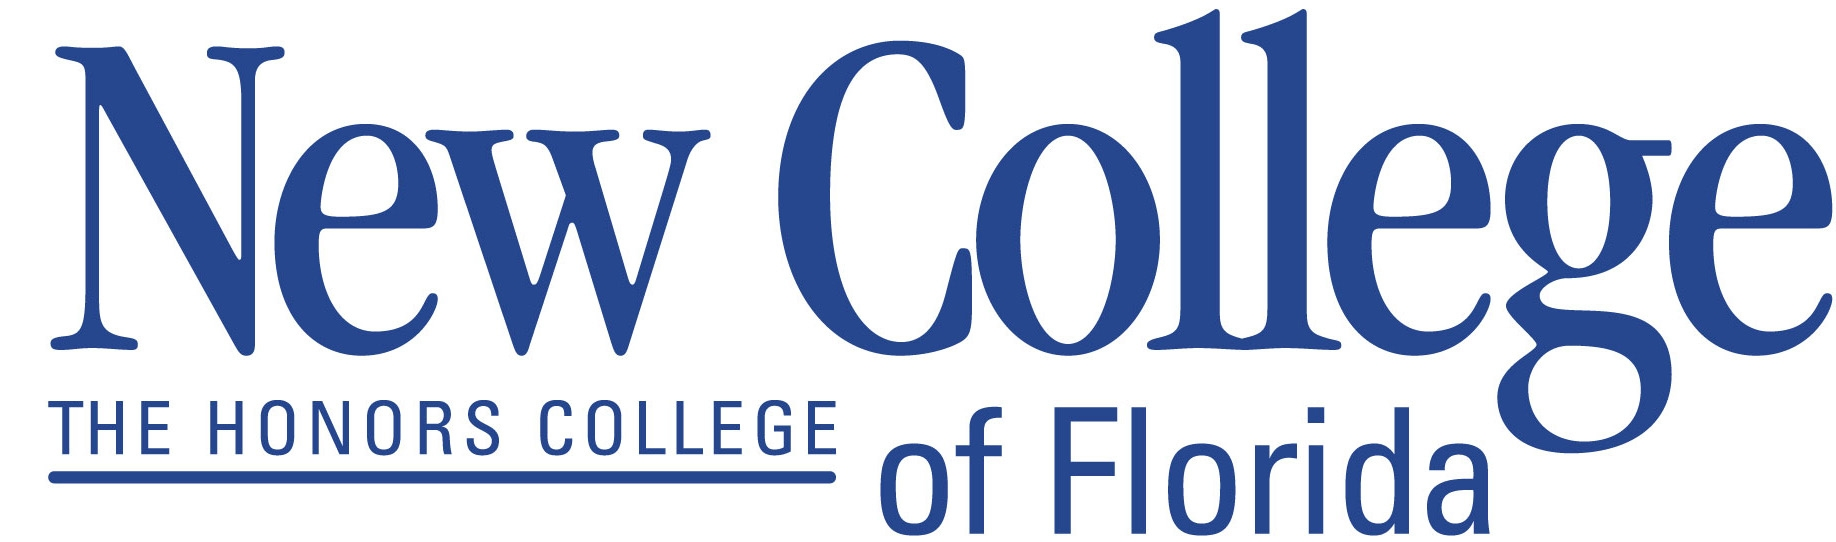 New College of Florida - Venue Sponsor